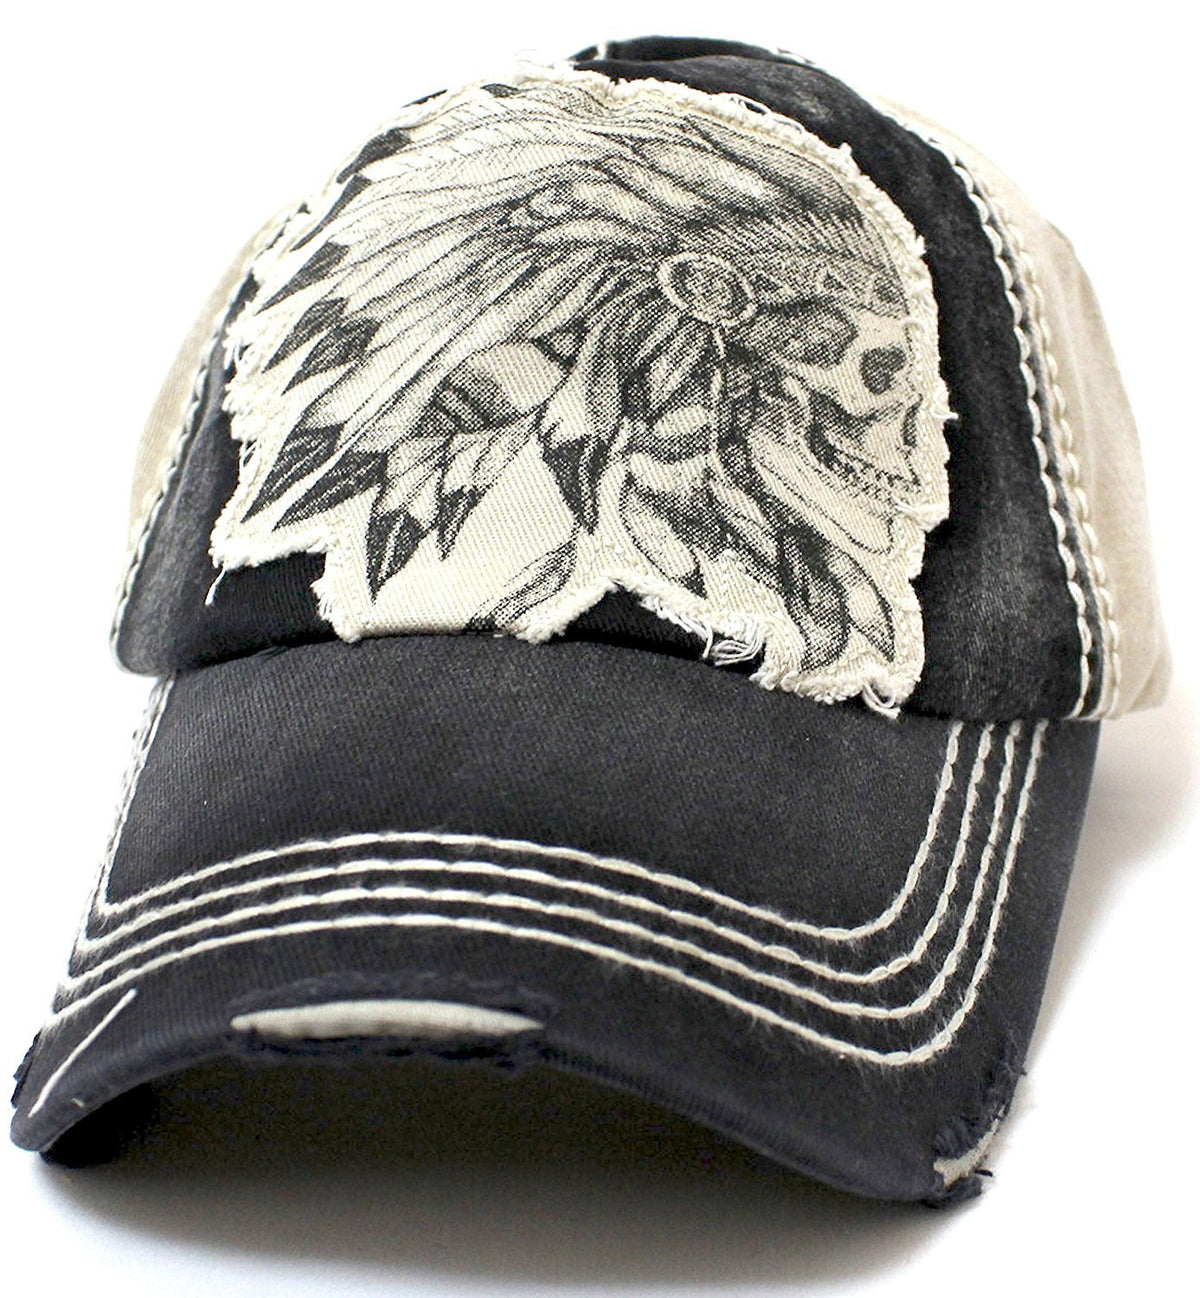 KHAKI/Black Vintage Washed CHIEF HEADDRESS Patch Embroidery Baseball Cap - Caps 'N Vintage